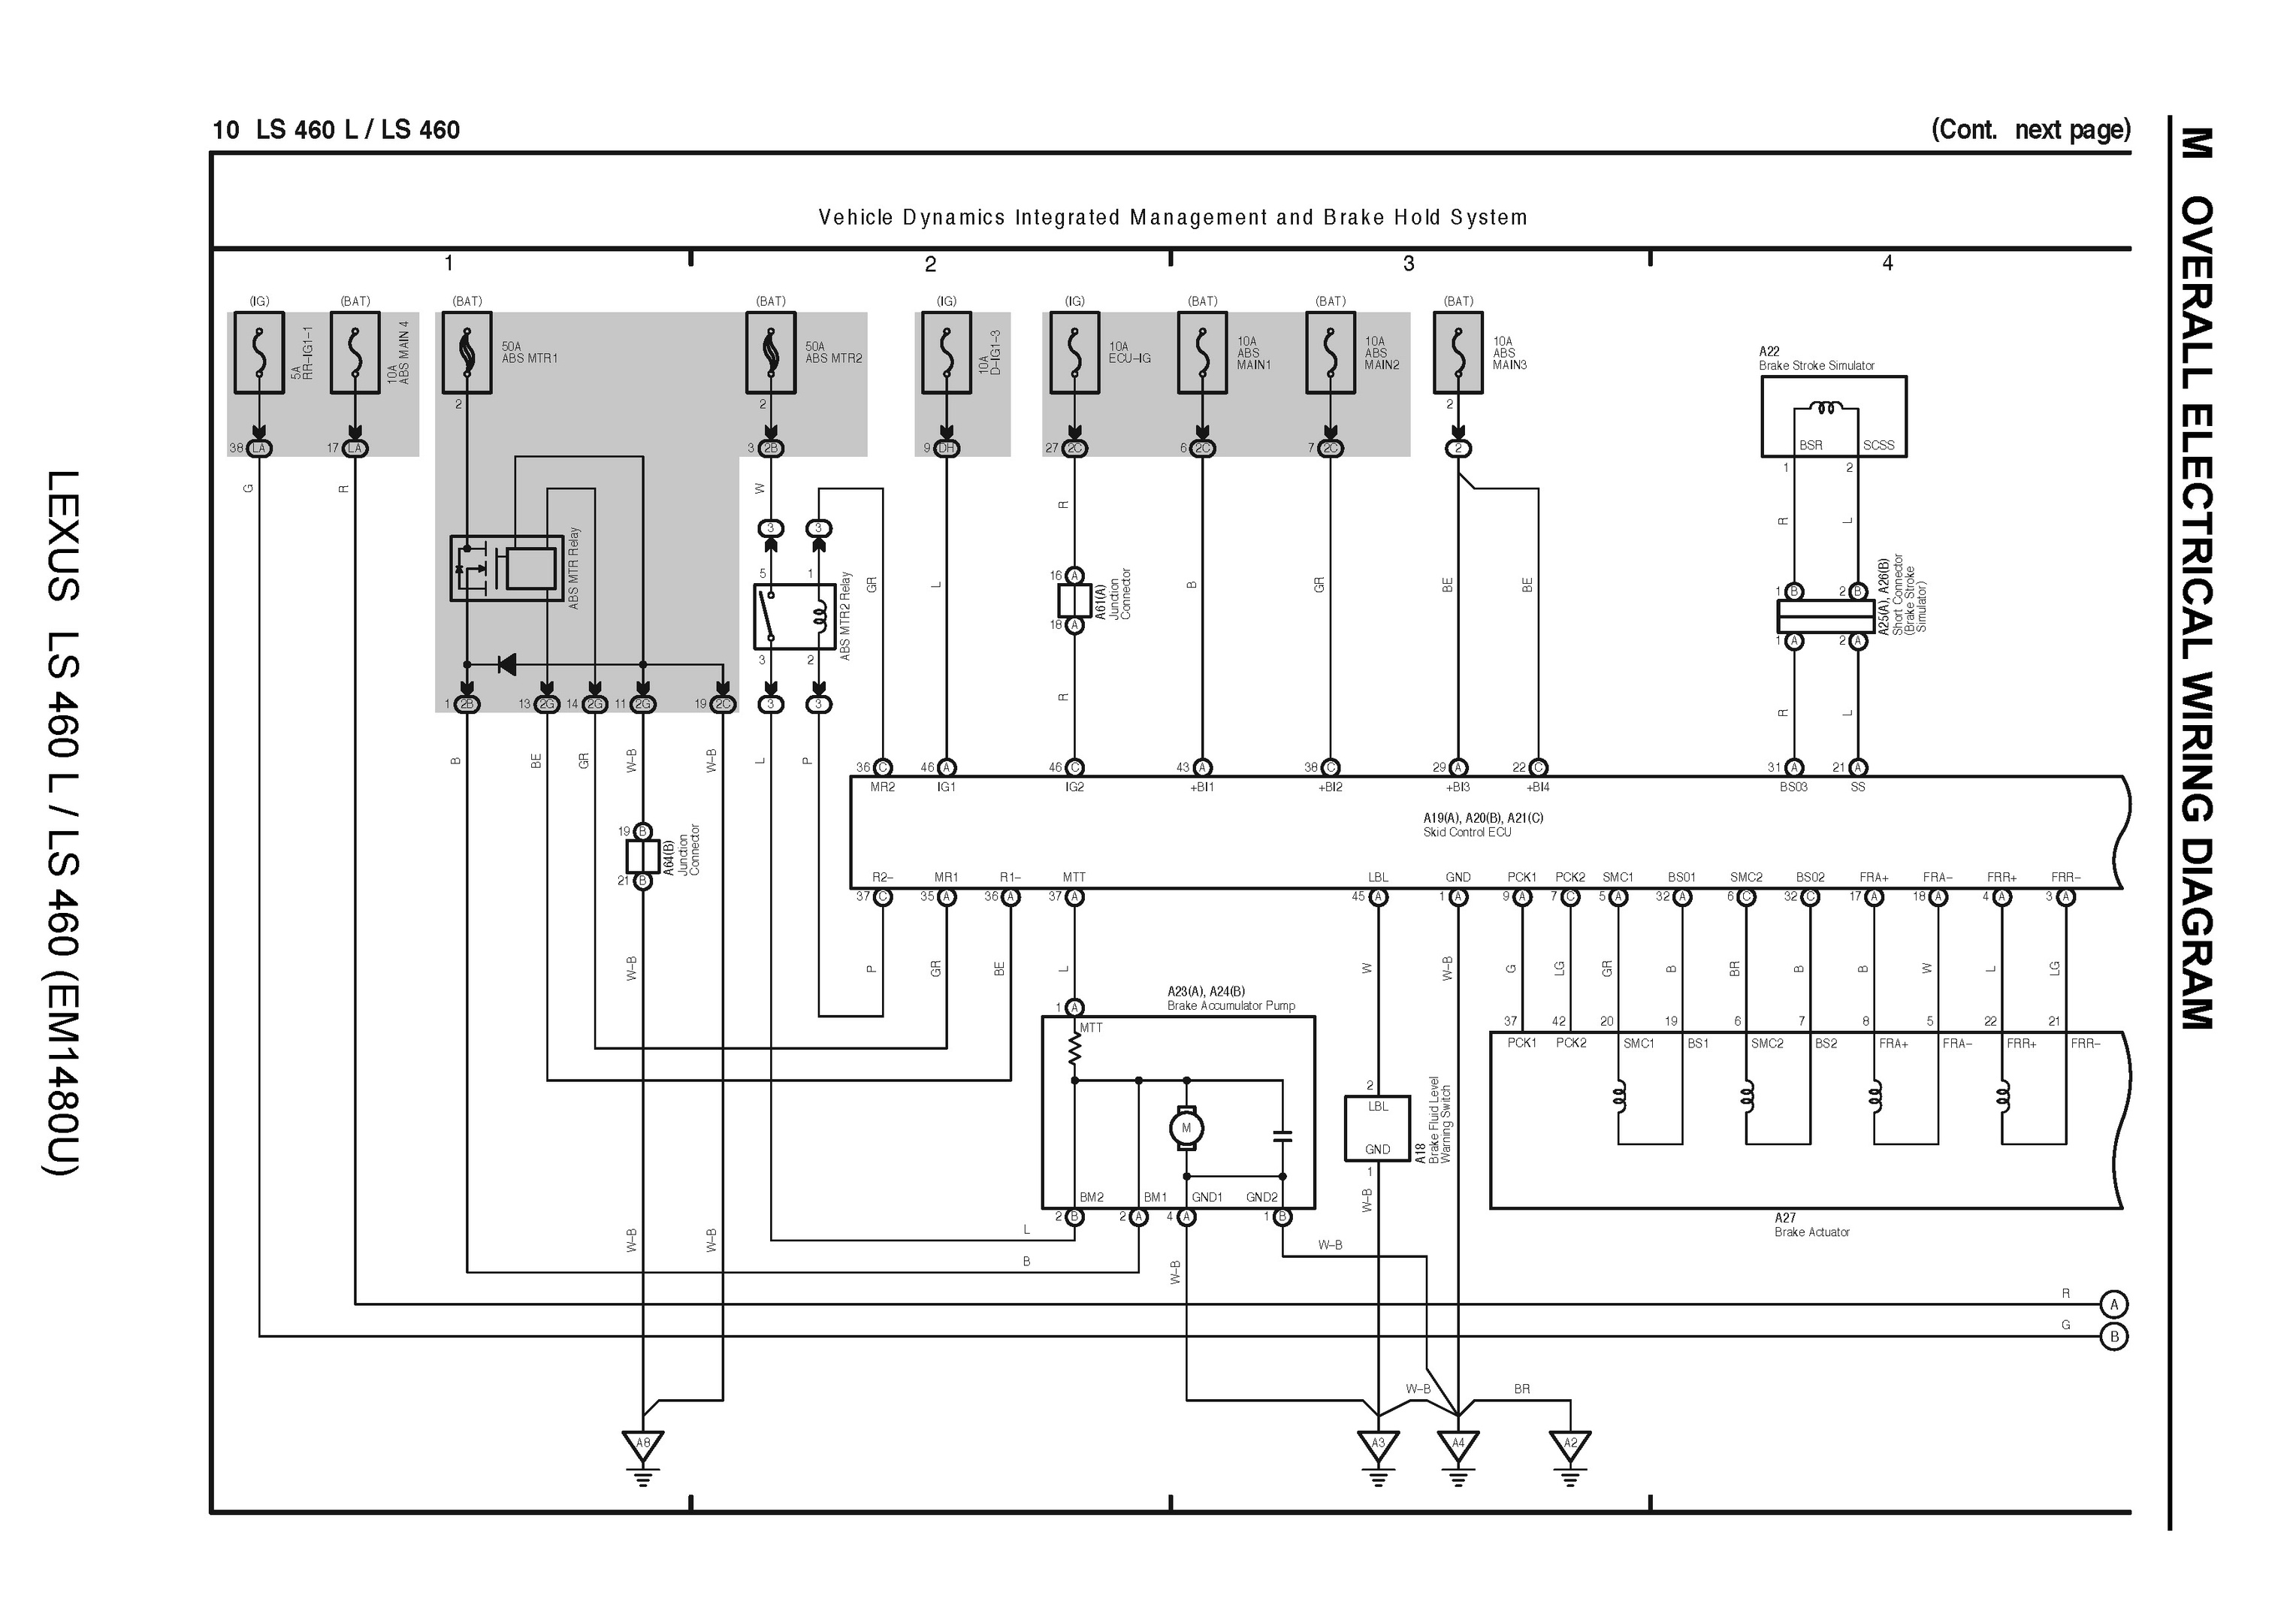 Free 2007 Lexus Ls460l Ls460 Oem Electrical Wiring Manual Pdf Overall Diagram